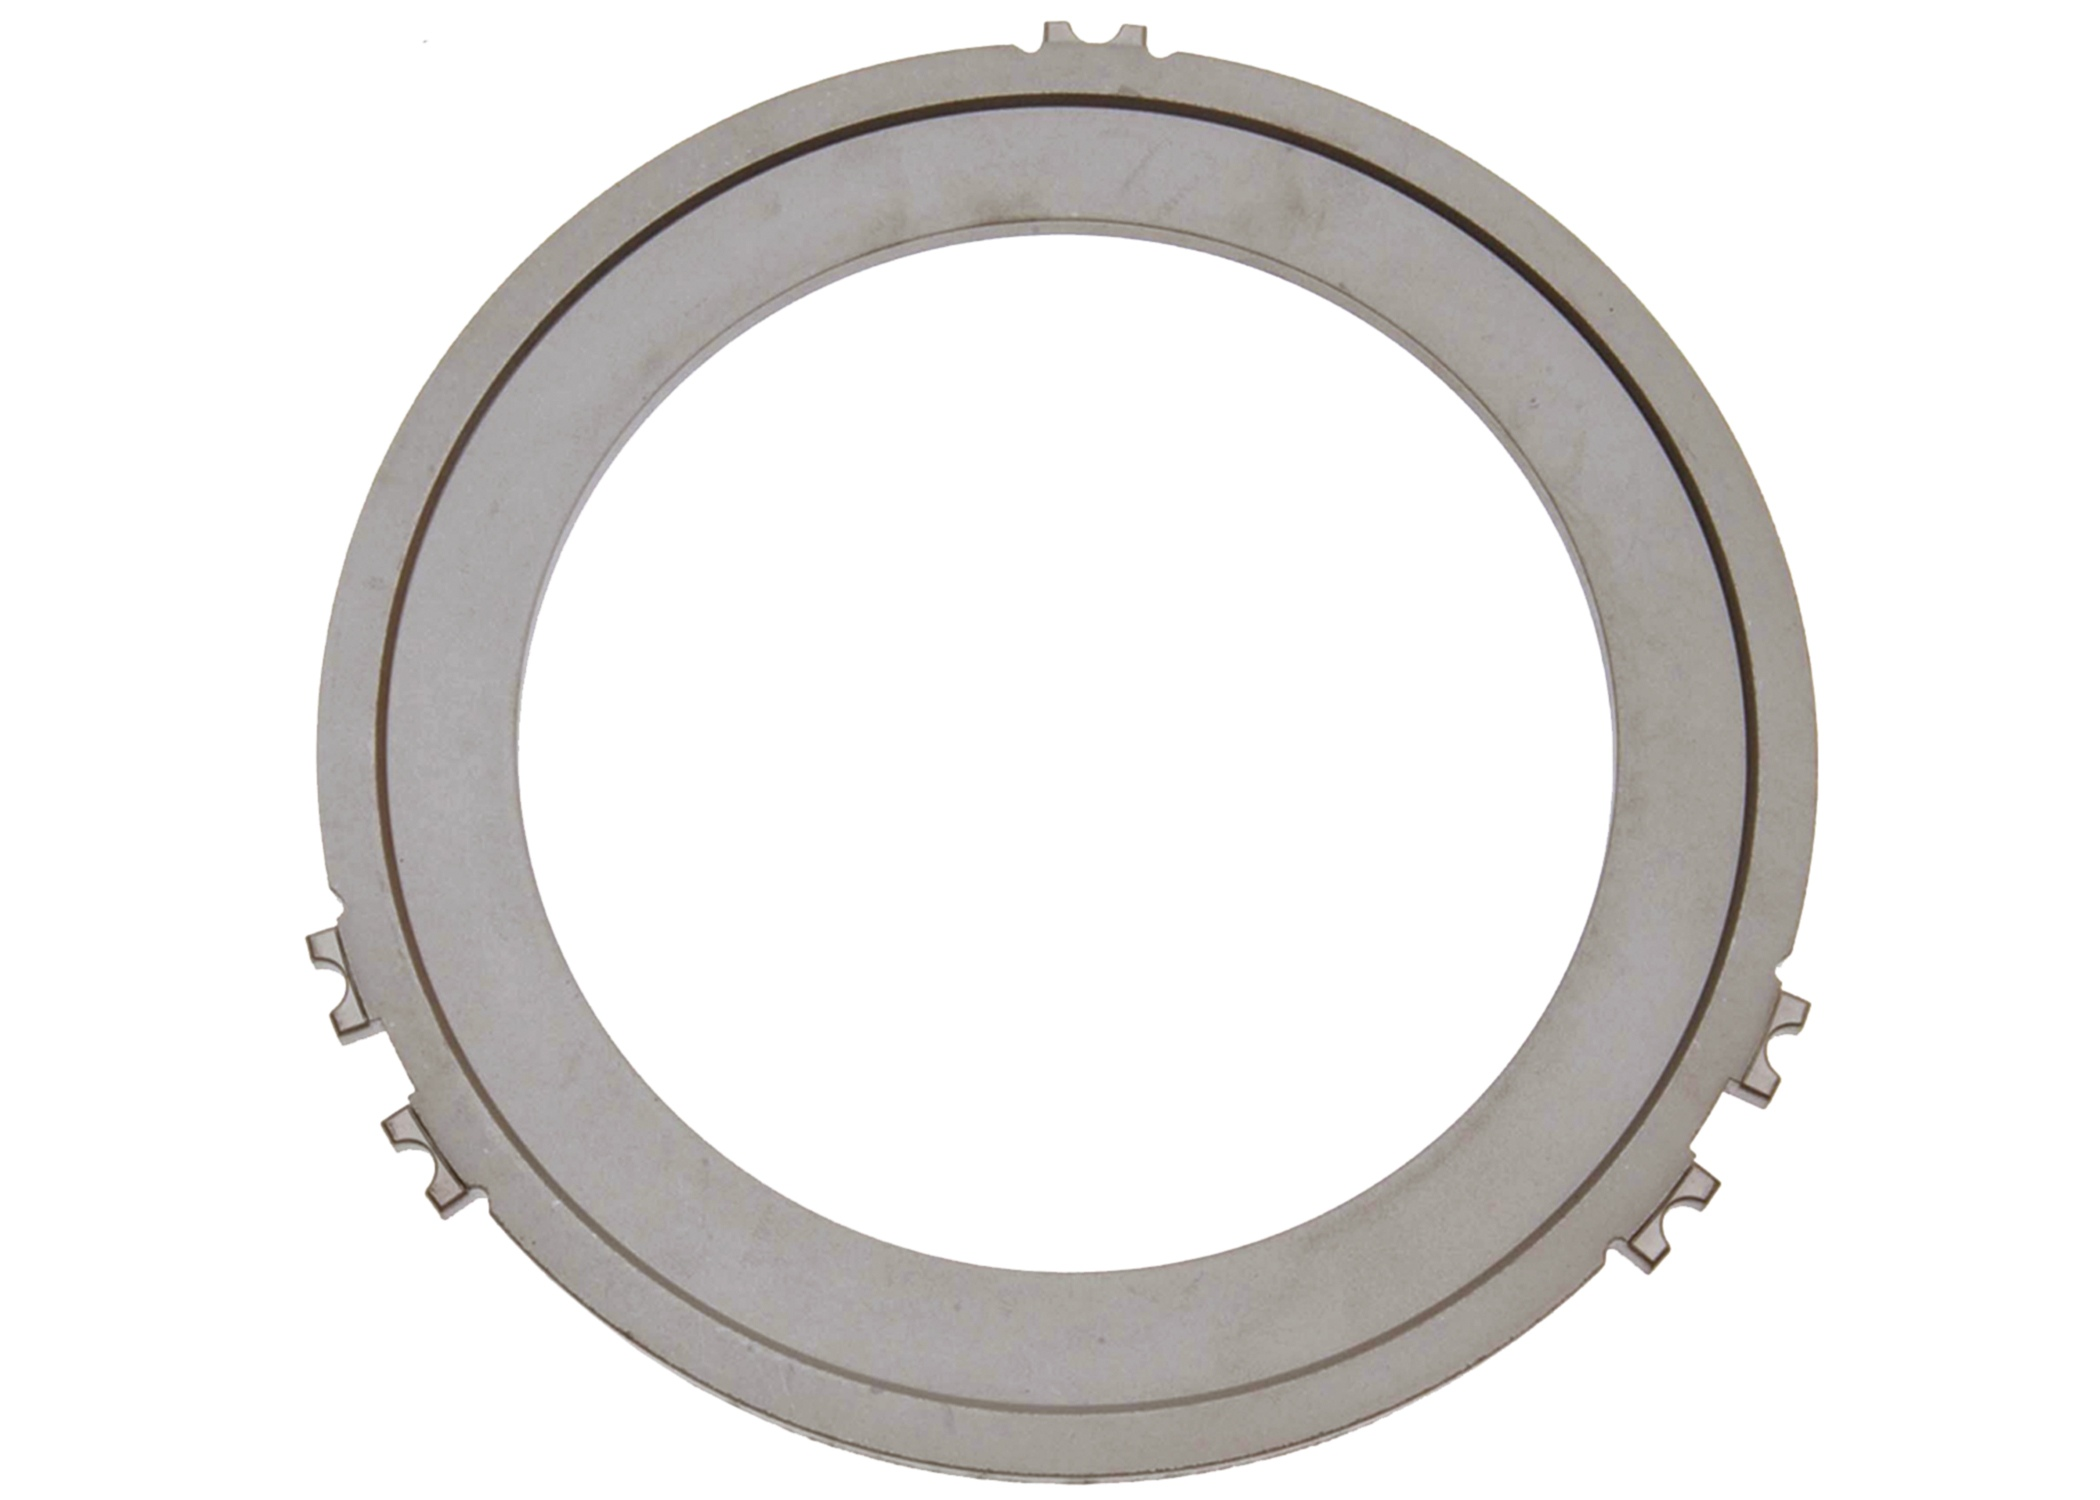 ACDELCO OE SERVICE - 2nd Clutch Backing Plate - DCB 24201544